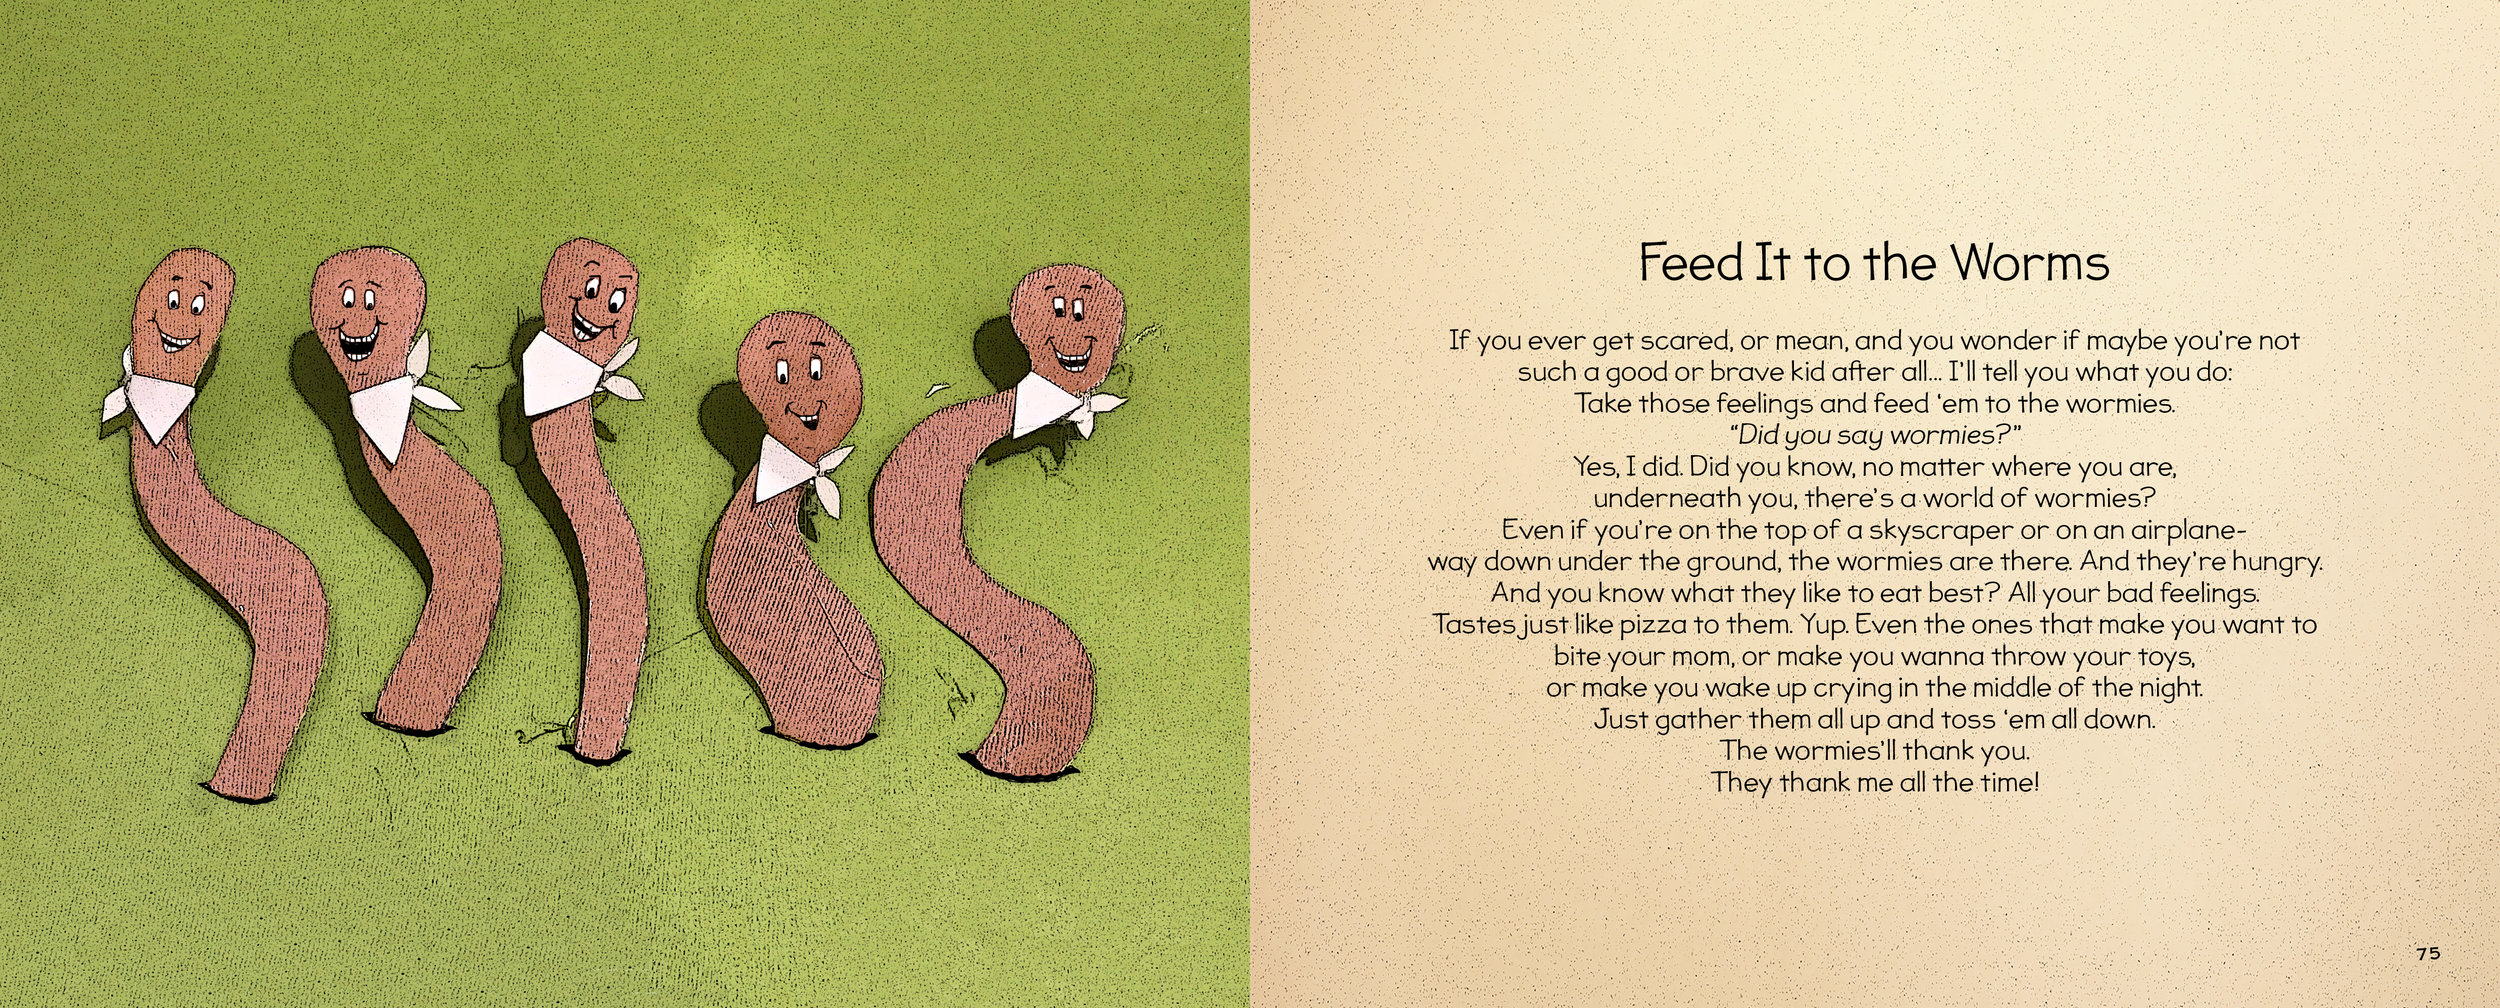 FEED IT TO THE WORMS FINAL SPREADS jpgs dec 1038.jpg